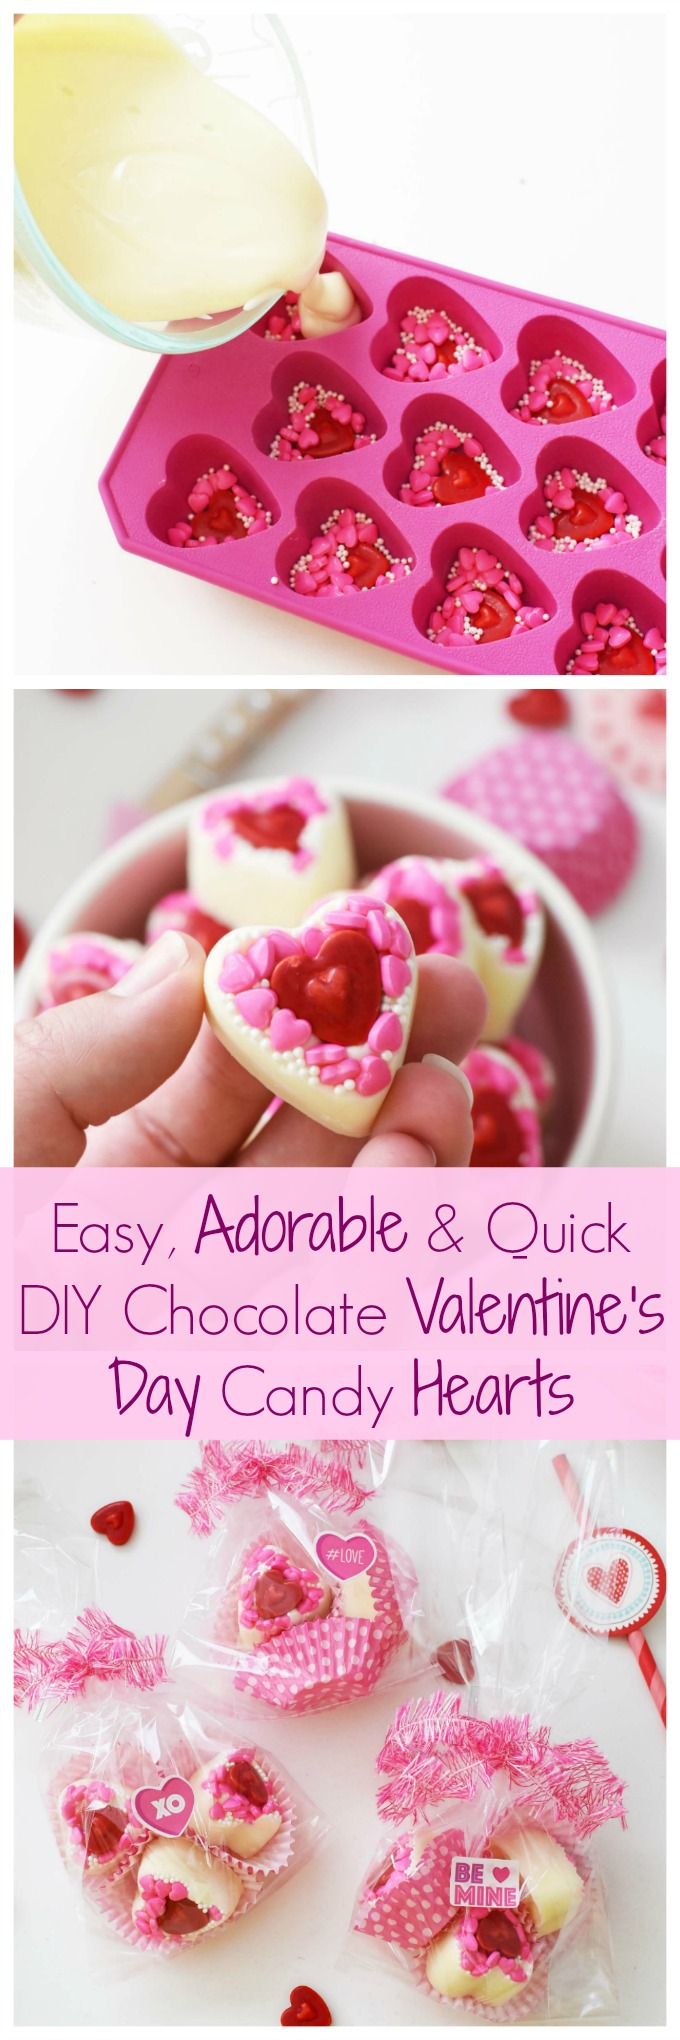 Easy, Adorable, & Quick DIY White Chocolate Valentine\'s Day Candy Hearts